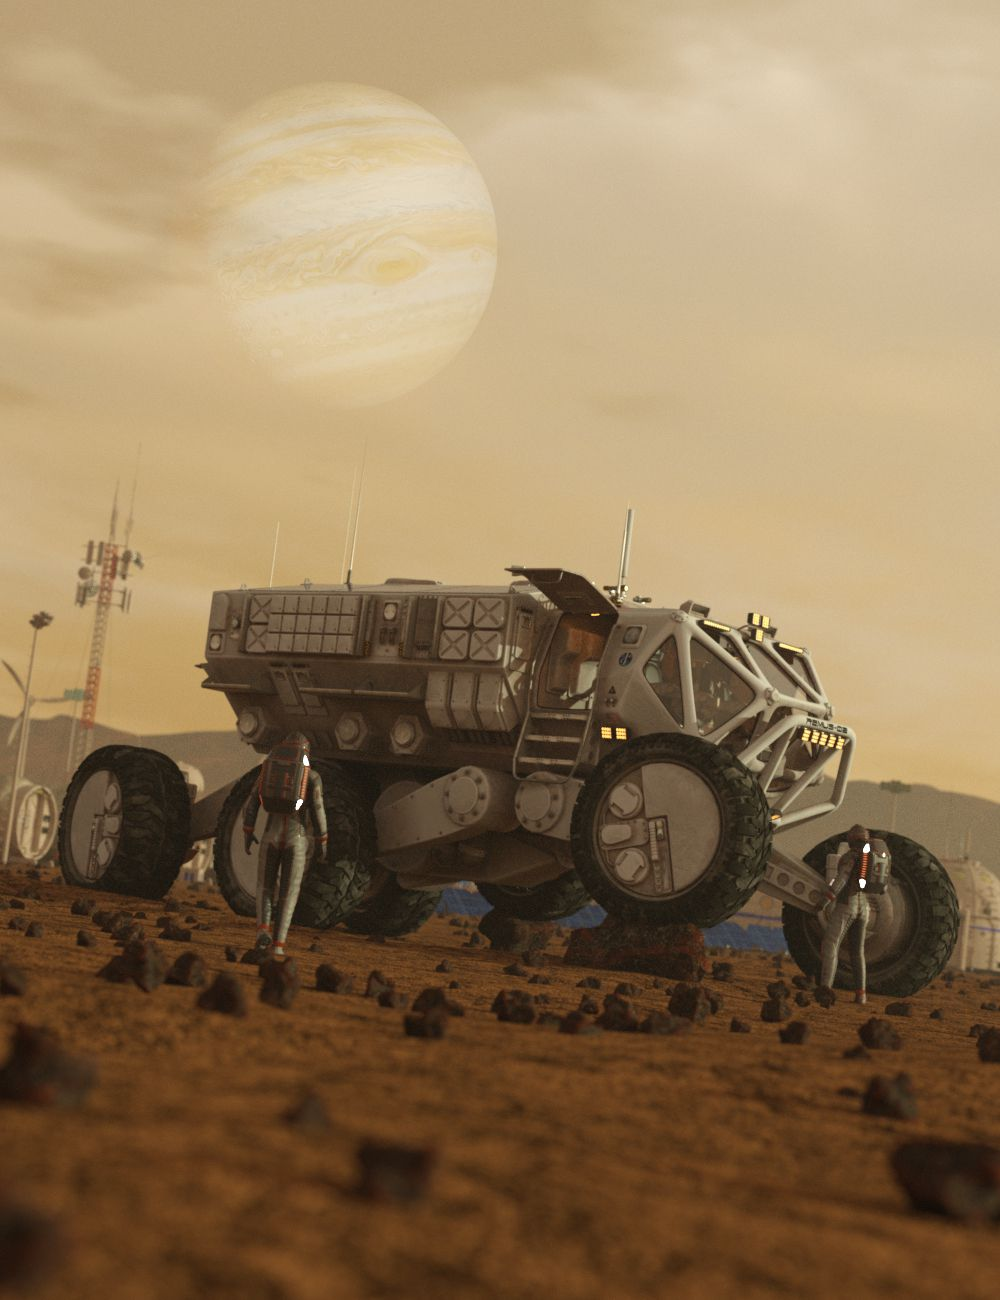 Remus-02 Rover by: DzFire, 3D Models by Daz 3D